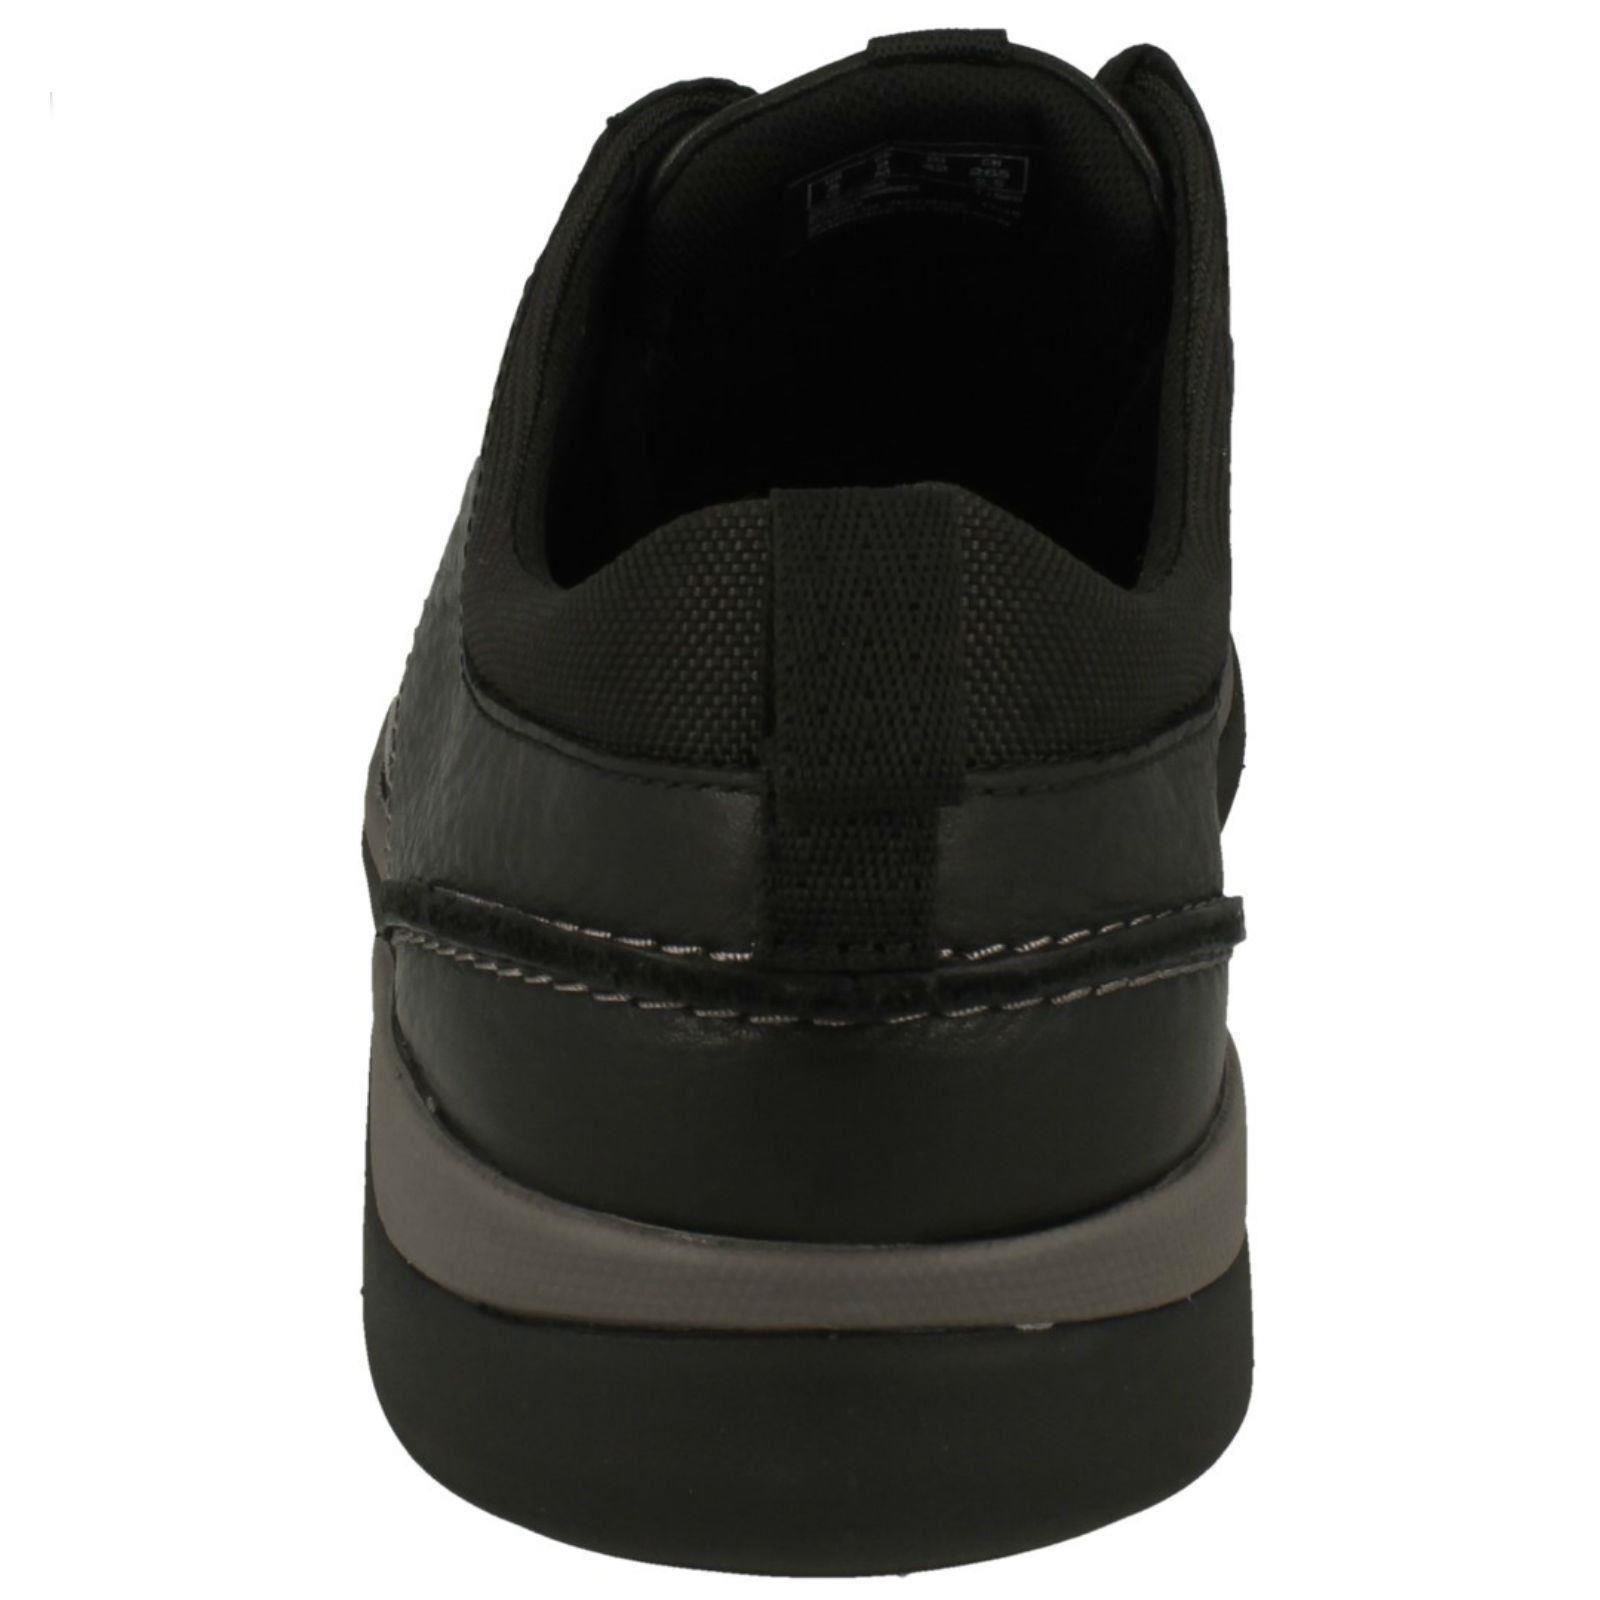 Mens-Unstructured-by-Clarks-Lace-Up-Shoes-039-Garratt-Street-039 thumbnail 6